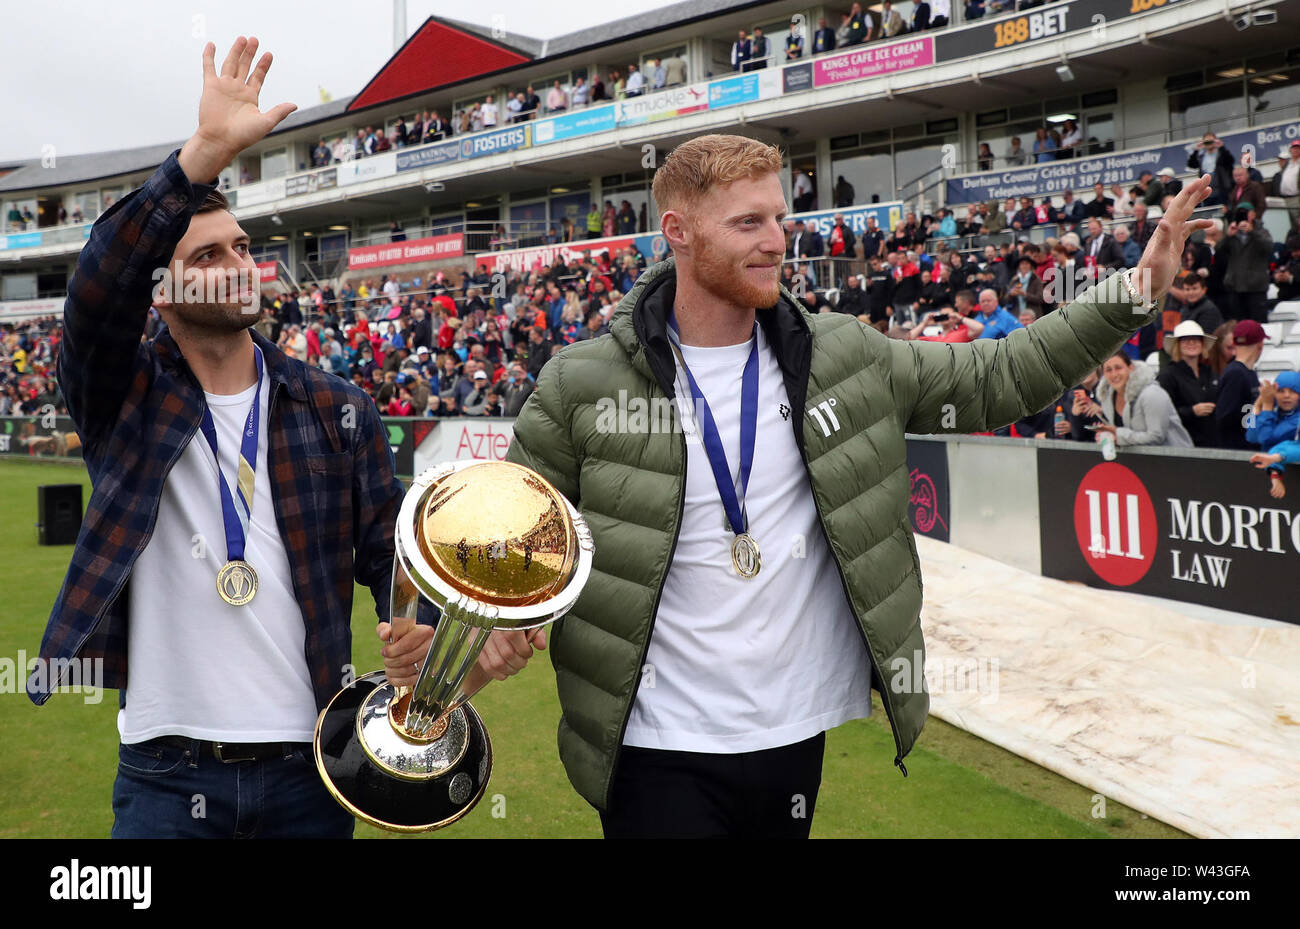 Ben Stokes (right) and Mark Wood celebrate with Cricket World Cup ahead of the Vitality Blast T20 match at Emirates Riverside, Durham. - Stock Image